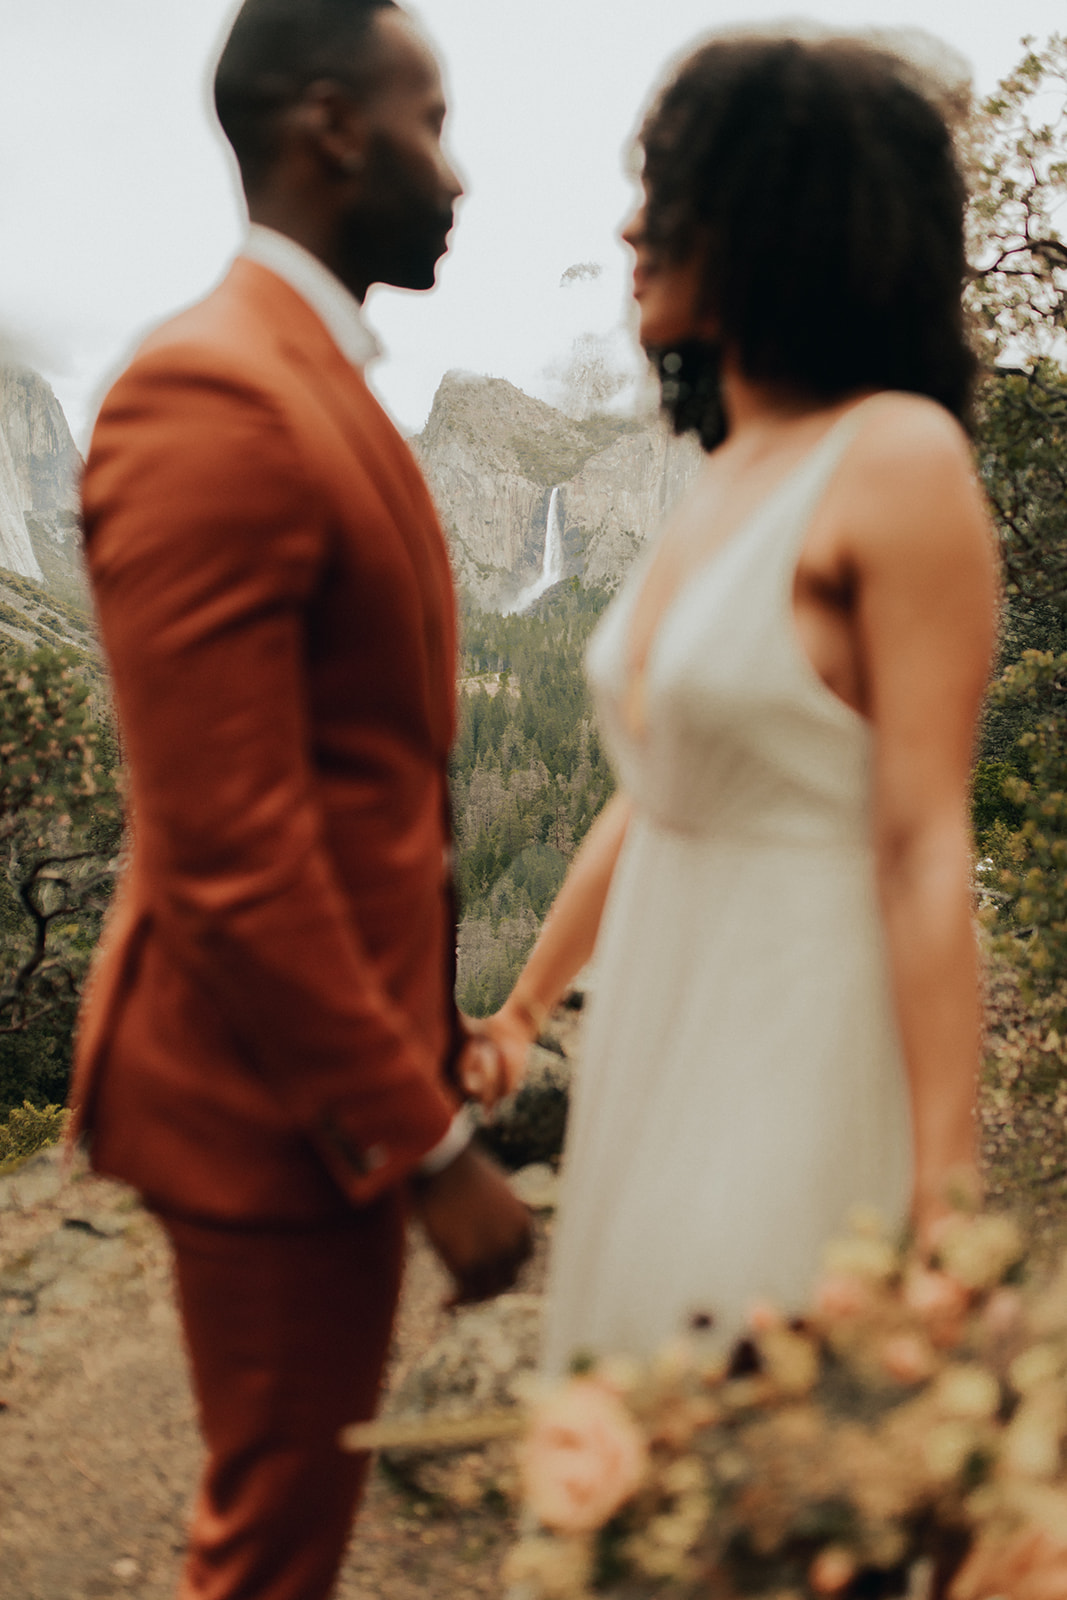 Yosemite_Elopement_Hannah_Alena_Photo_Portland_Wedding_Photographer-103.jpg